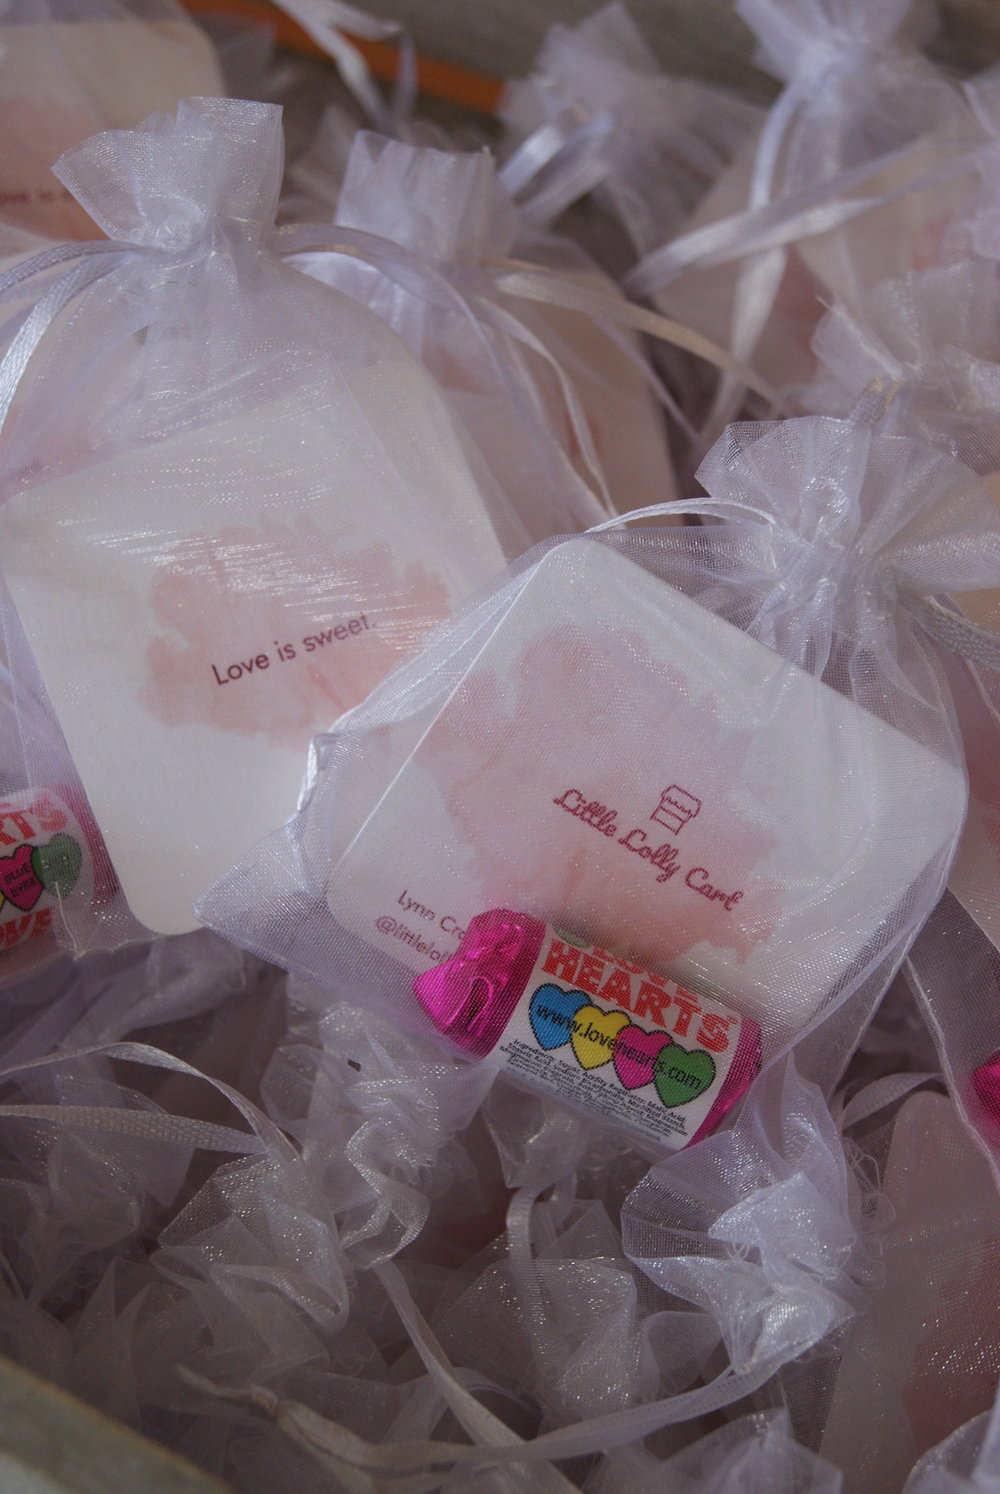 Wedding_expo_handout_bags.JPG